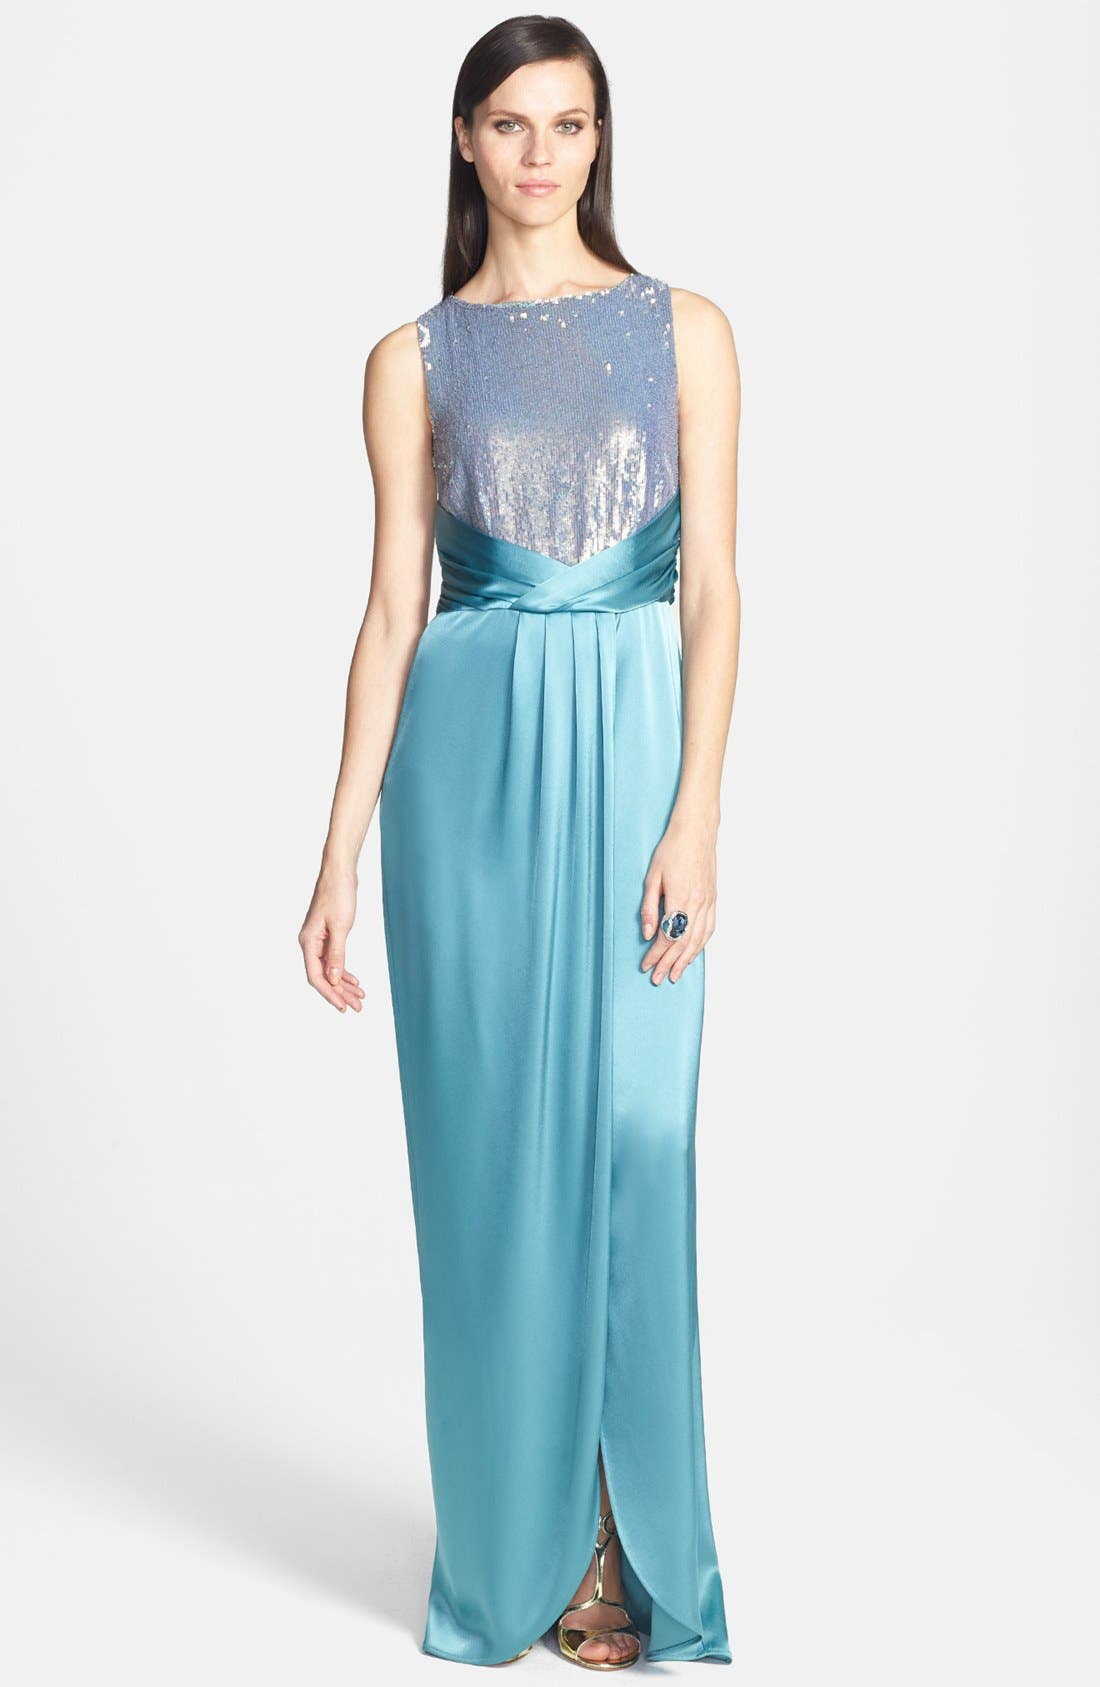 Main Image - St. John Collection Sequin Bodice Liquid Satin Gown with Train